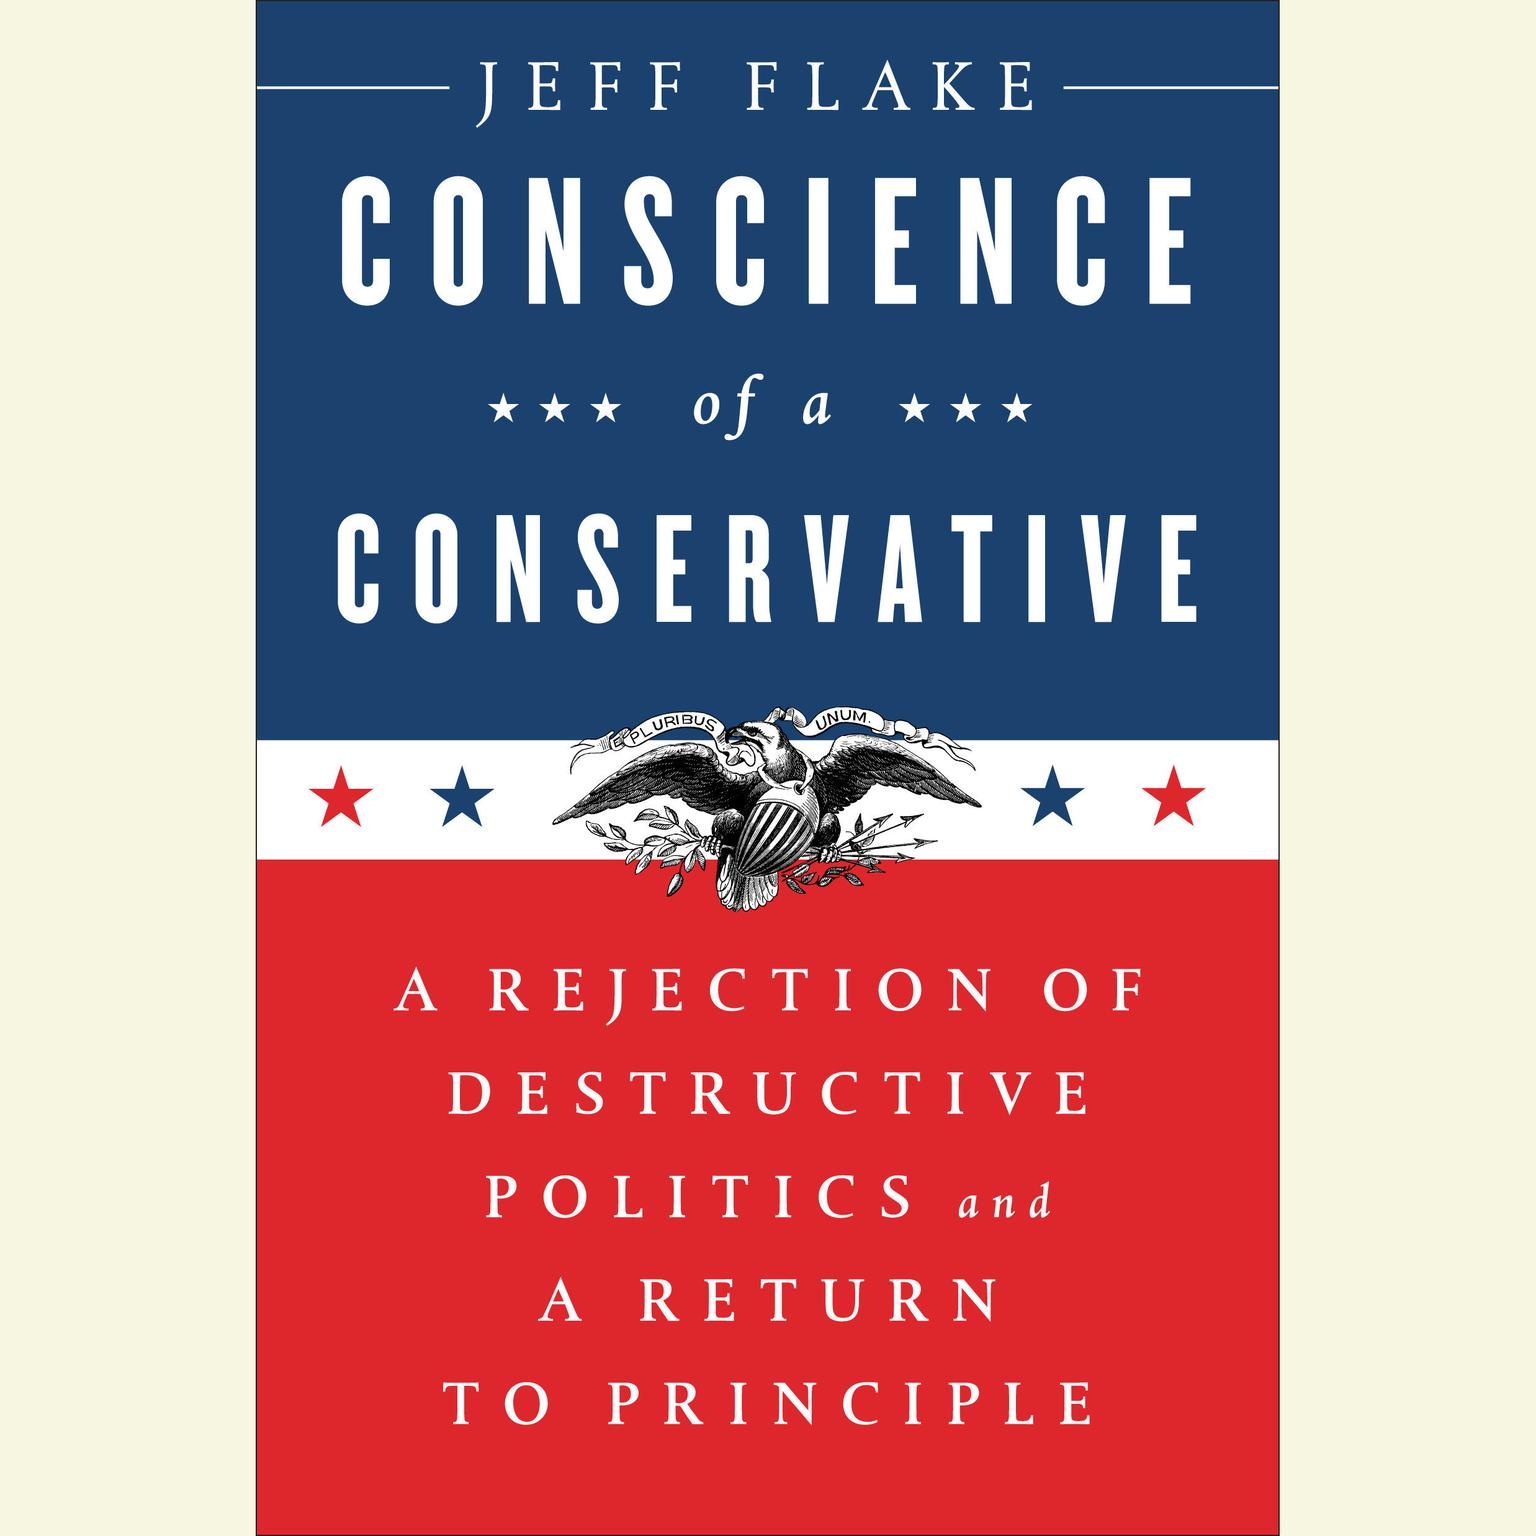 Printable Conscience of a Conservative: A Rejection of Destructive Politics and a Return to Principle Audiobook Cover Art